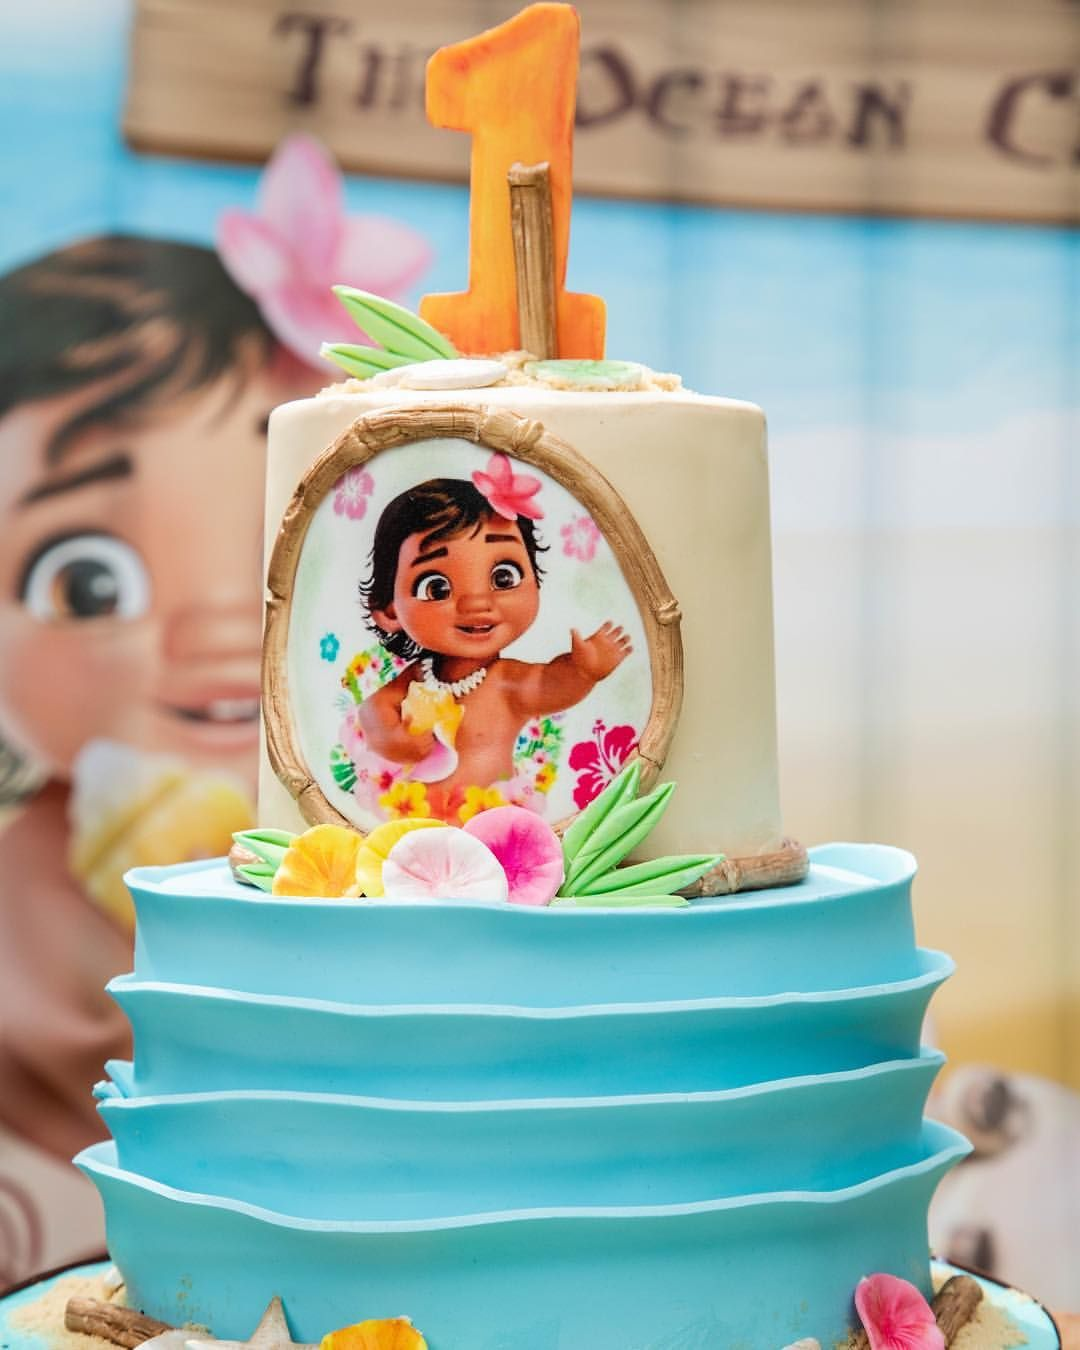 The Ocean Chose You Baby Moana S Birthday Cake By Hanolicakes Sweets By Ameliafi Outdoors Birthday Cake Moana Birthday Cake Birthday Cake Kids